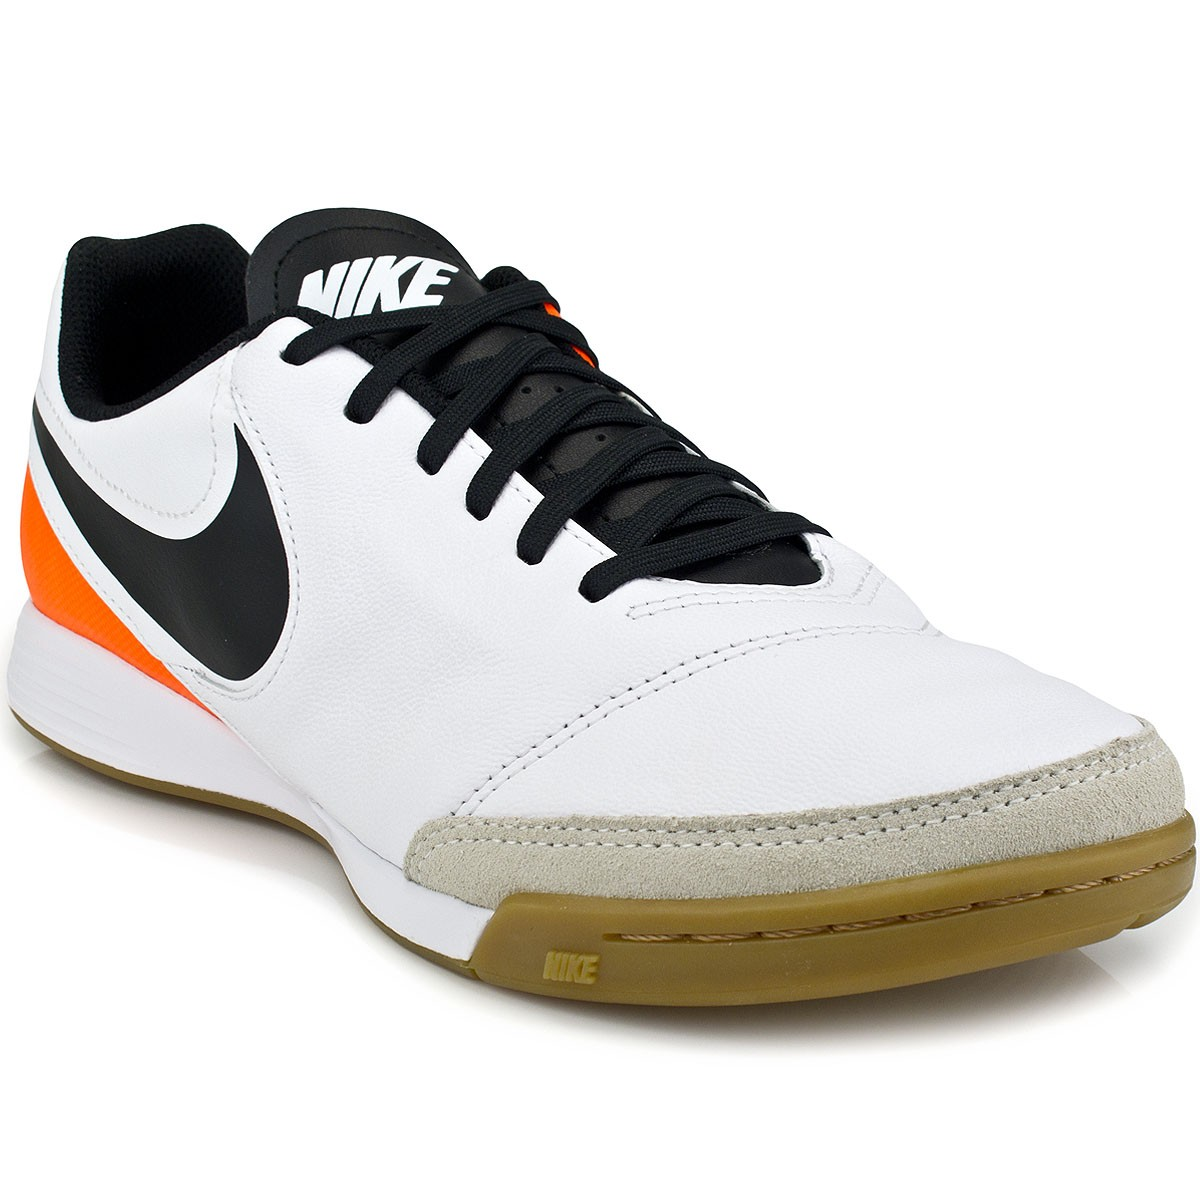 best service 67f3c 48878 Chuteira Nike Tiempo Genio II Leather IC 819215